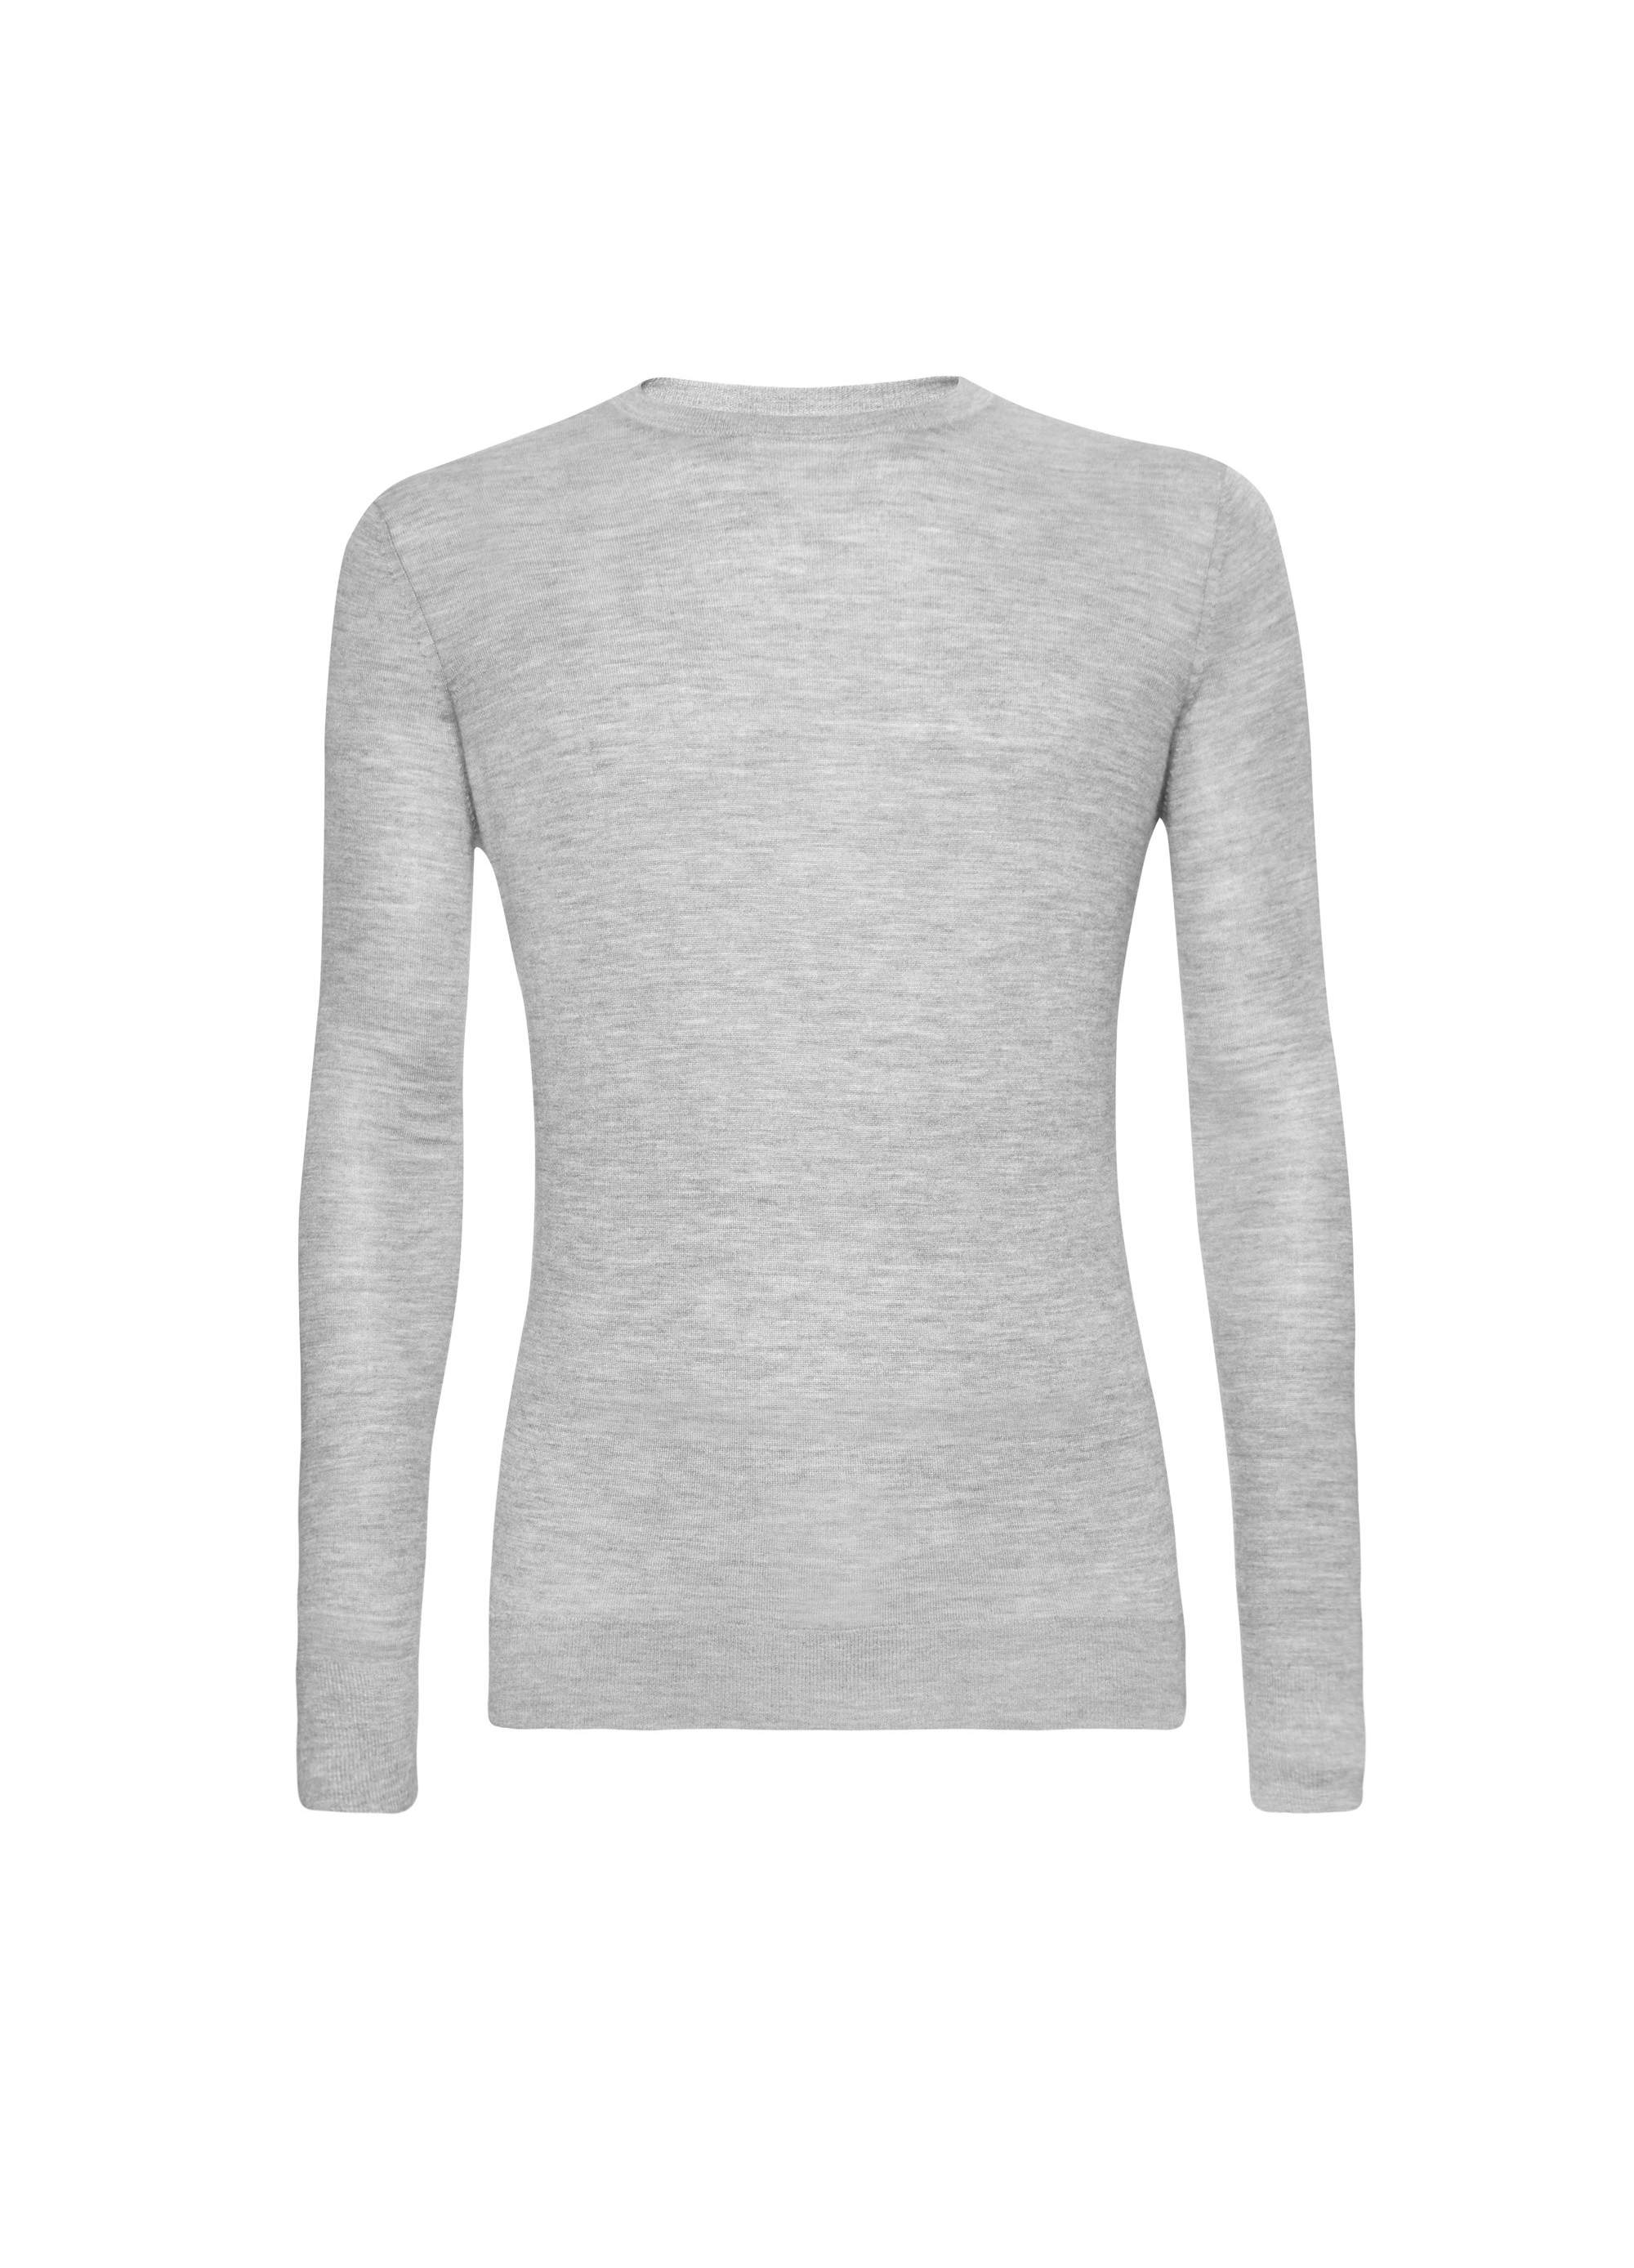 Round Neck Silk & Cashmere Light Grey 02